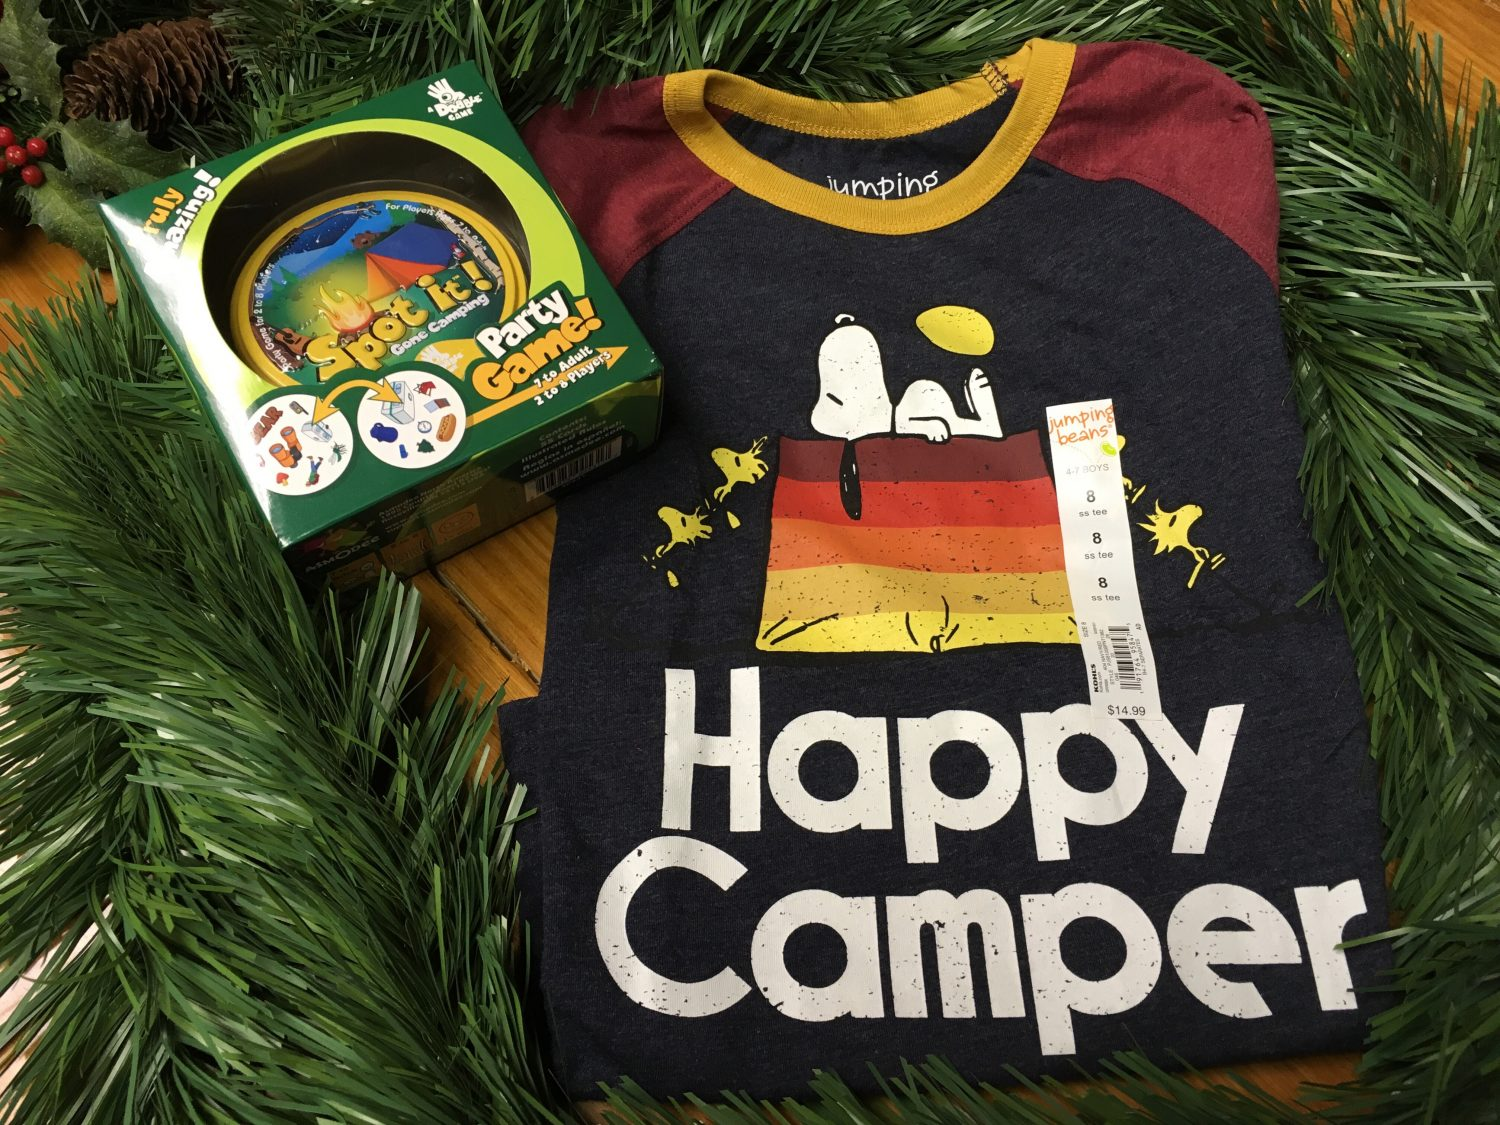 0a977273 Christmas giveaway! - The Touring Camper